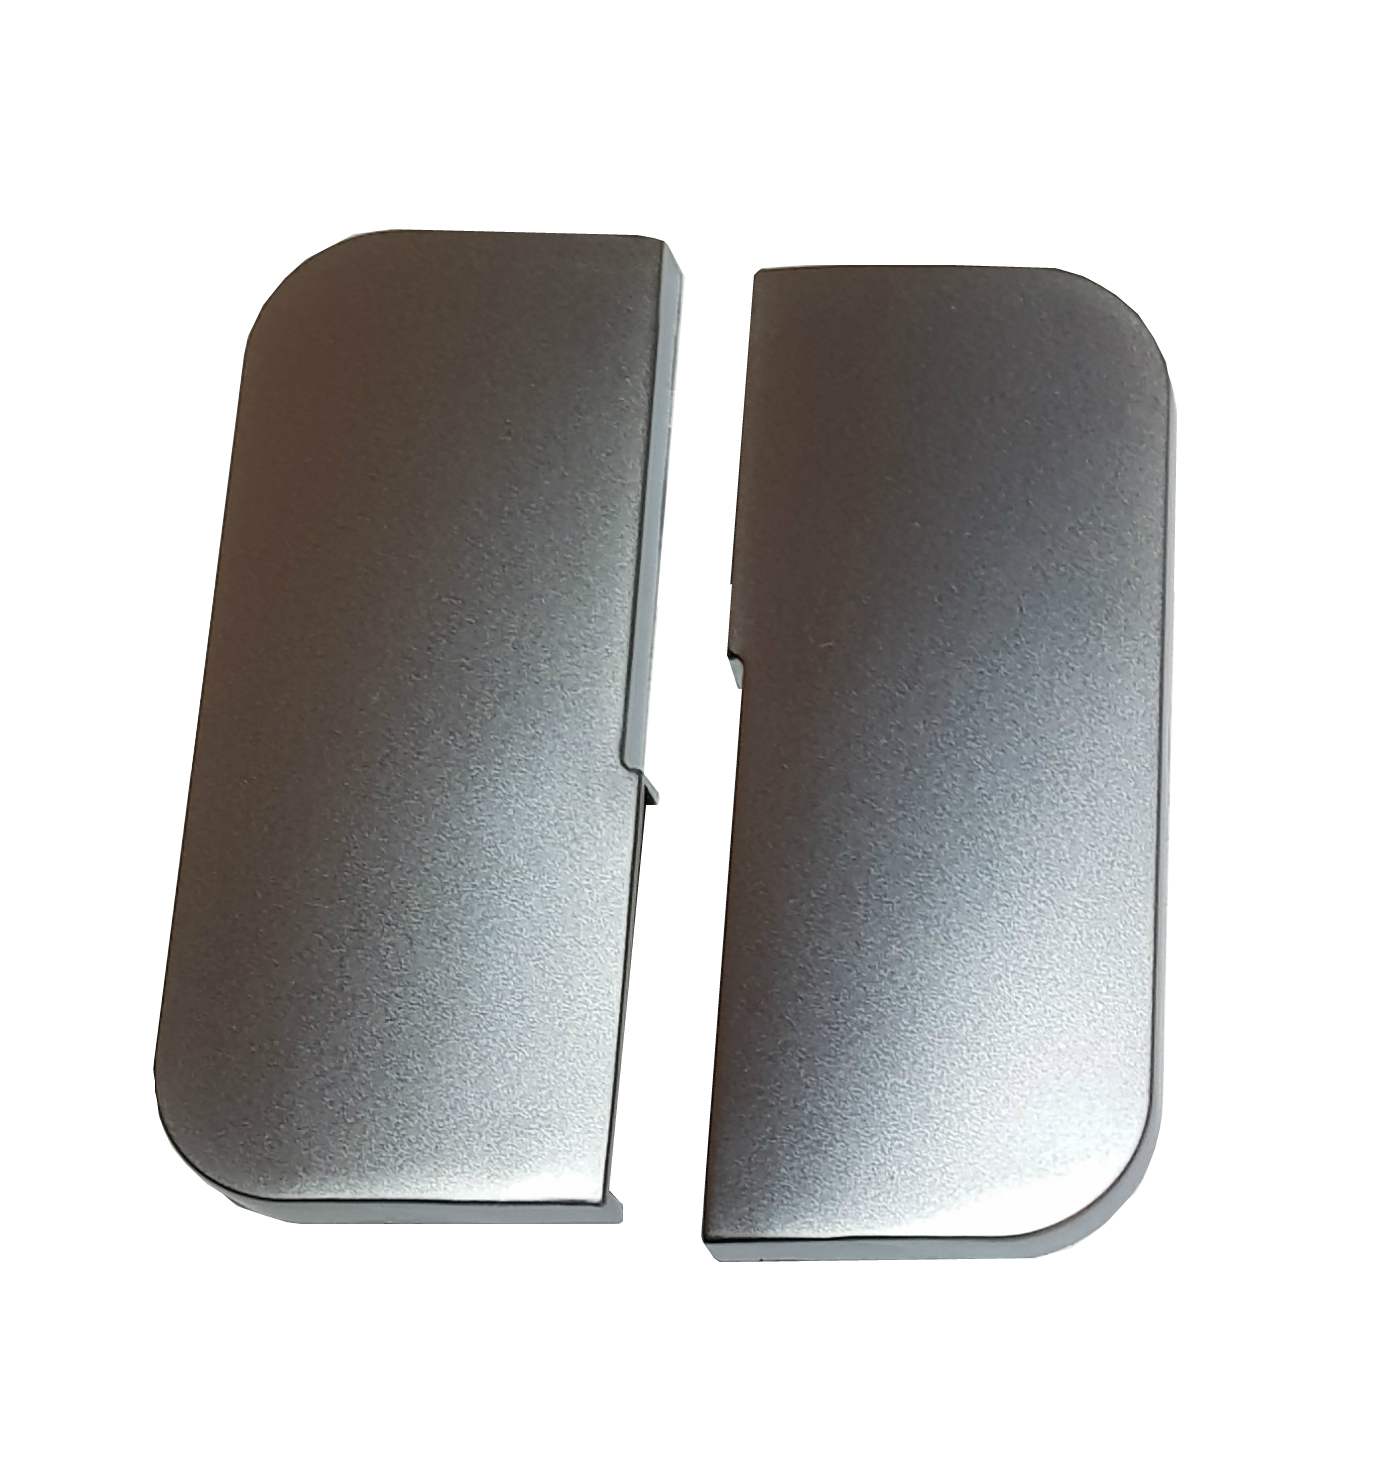 2 x Cover plate for 106C Hinge